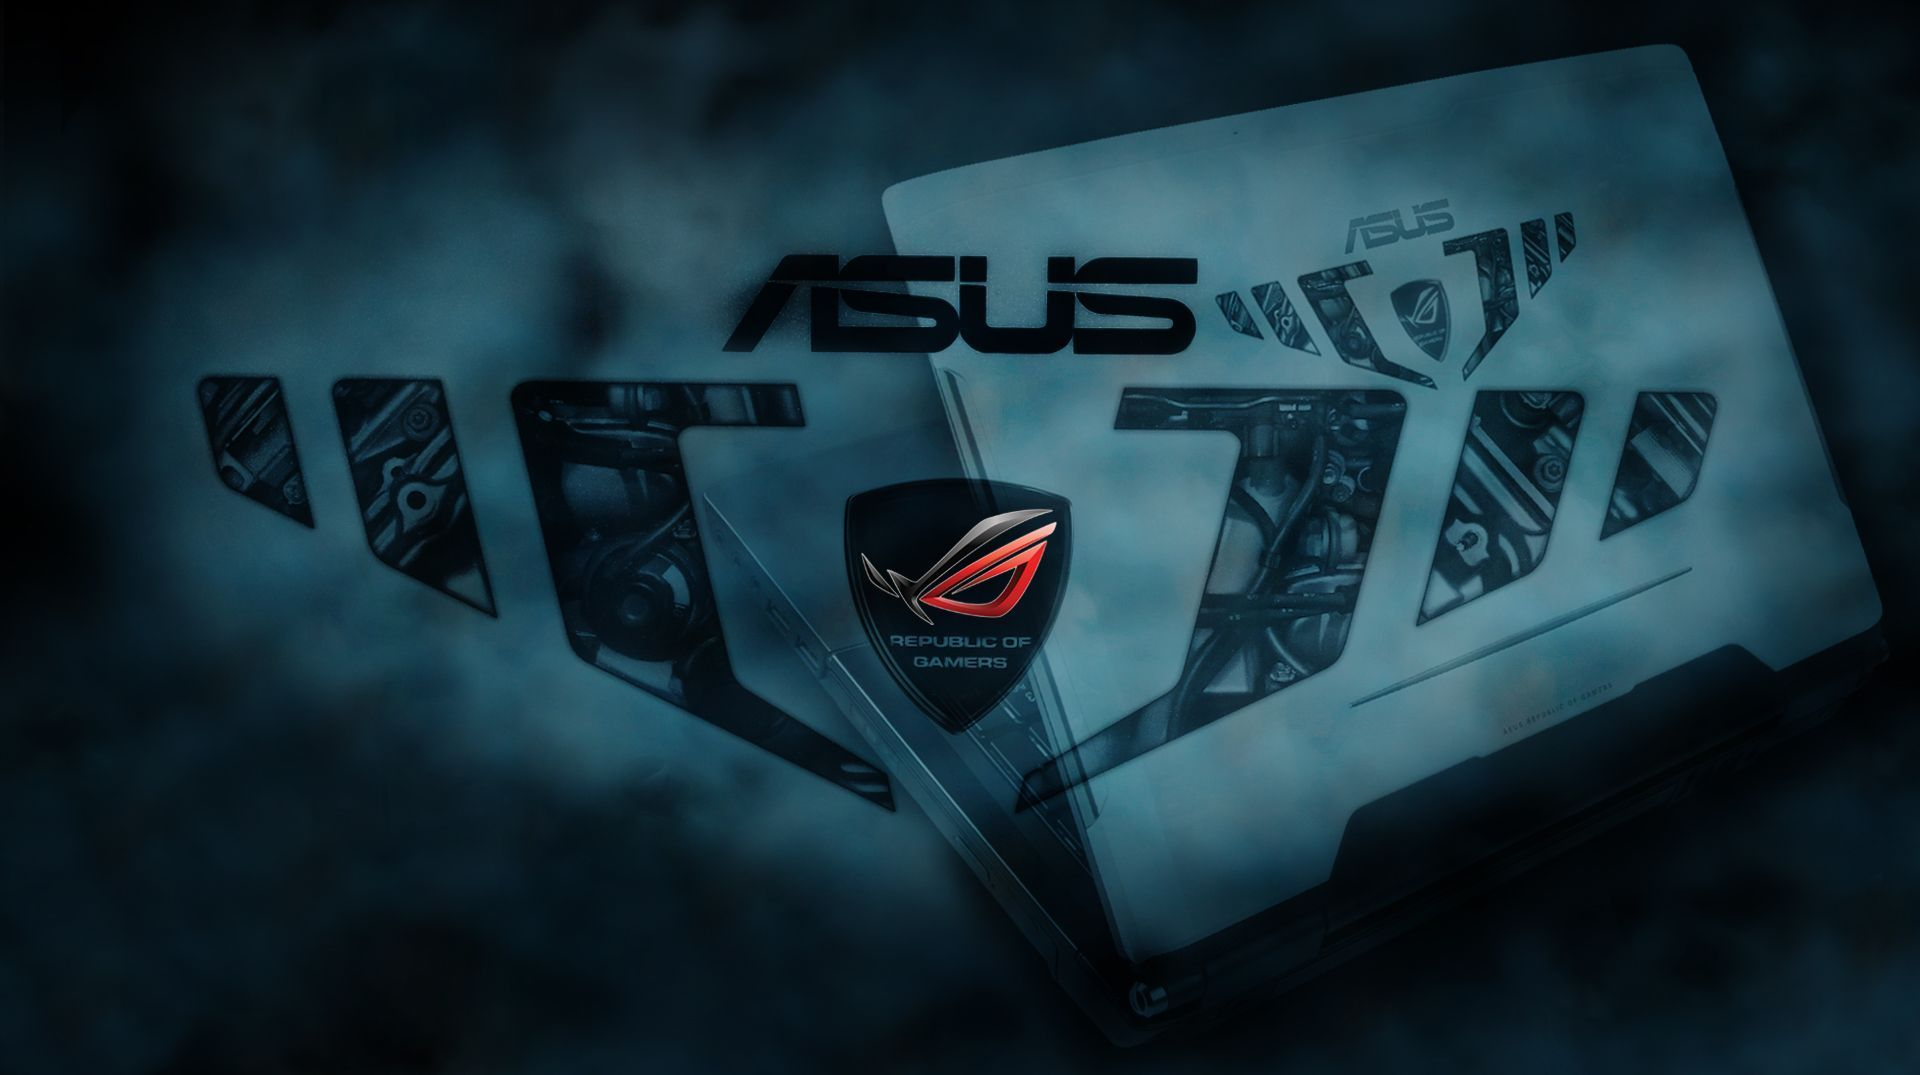 Asus 4k Ultra Hd Wallpapers Top Free Asus 4k Ultra Hd Backgrounds